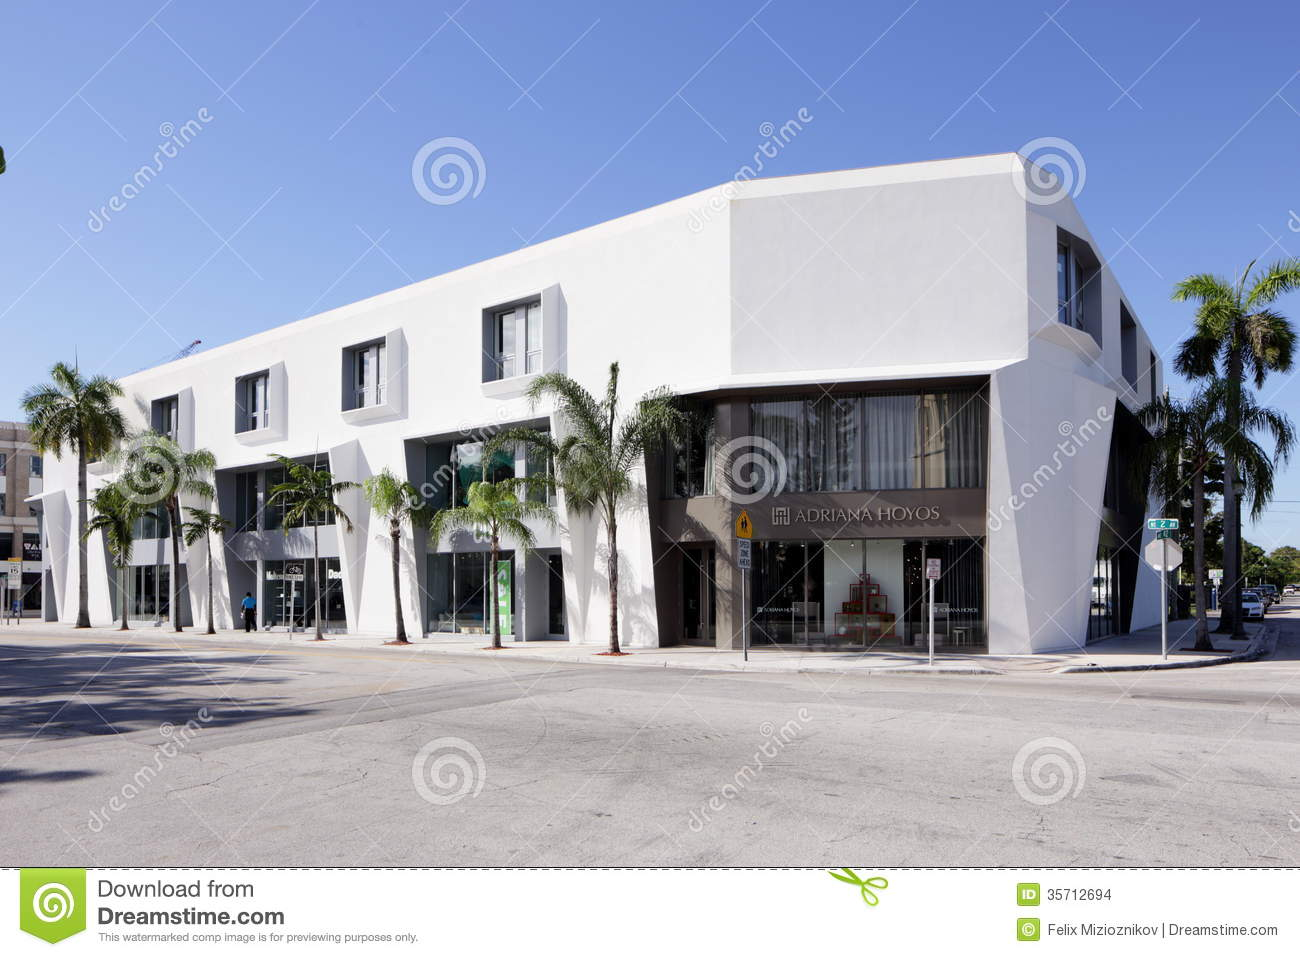 Adriana hoyos furniture store editorial stock image for Furniture miami design district